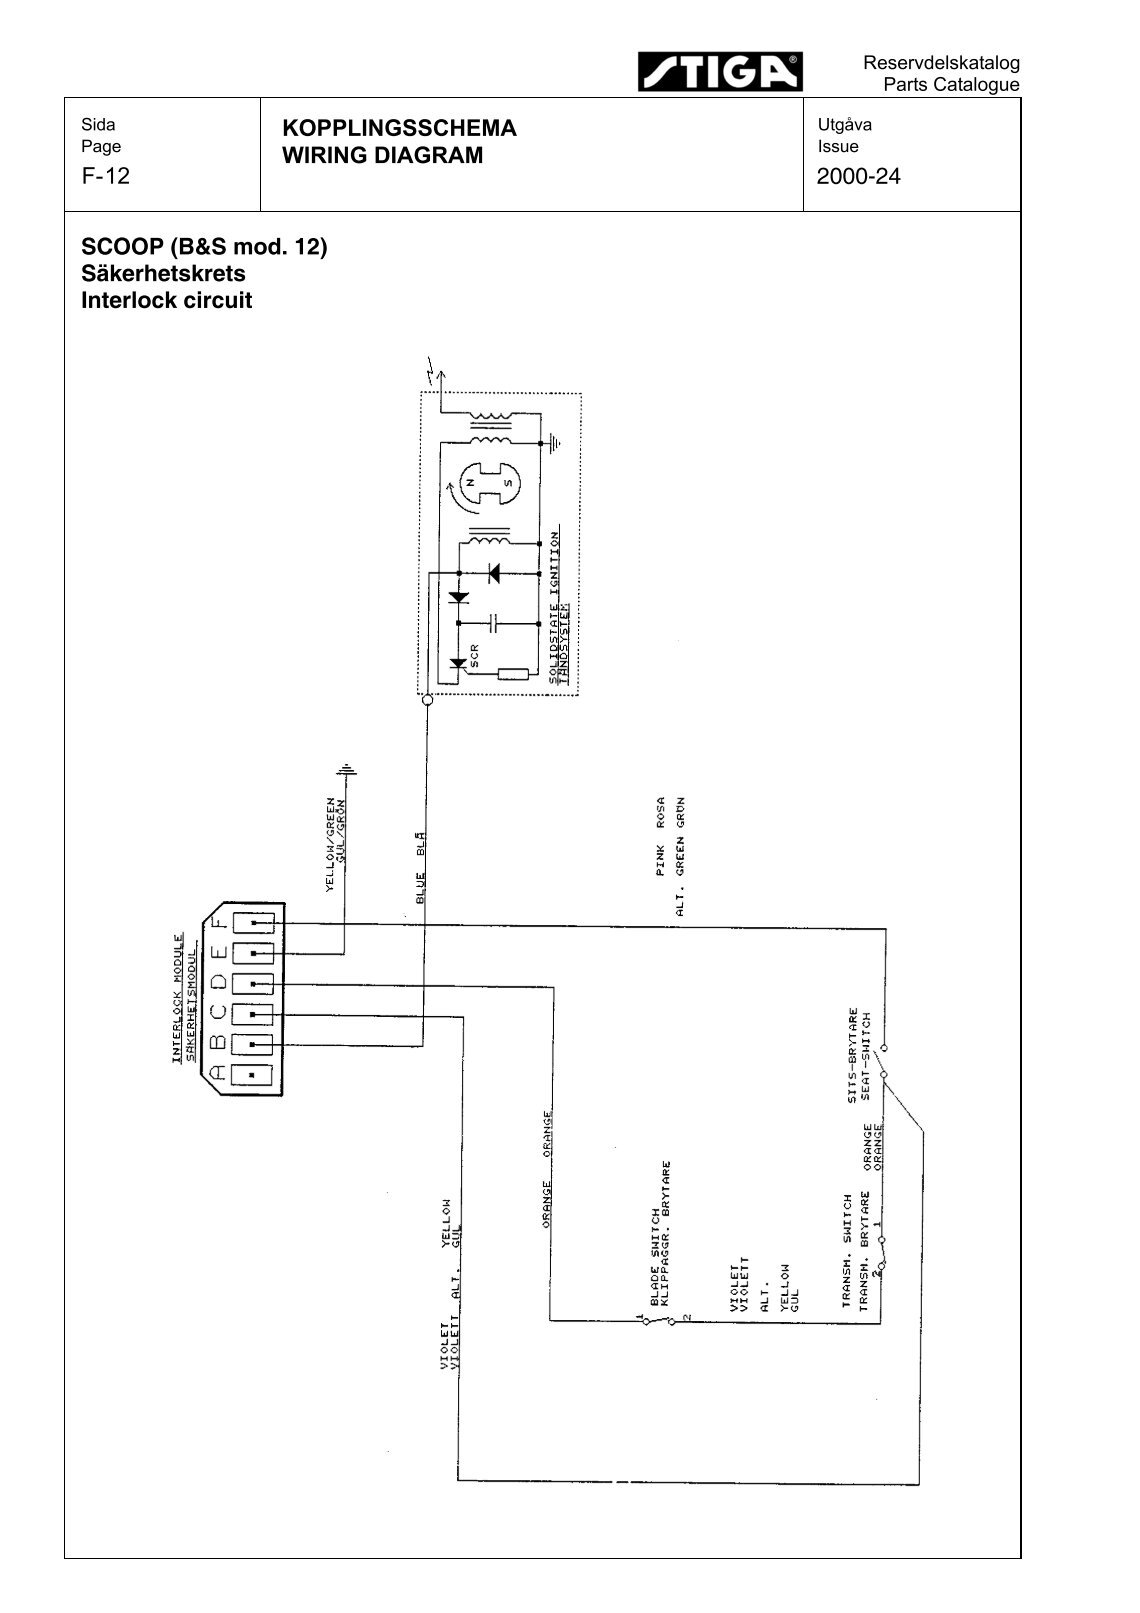 Ford Focus Speaker Wire Diagram 2015 Radio Wiring With 2003 For 2012 as well Radio Delco Diagram Wiring 16265383 in addition Holden Vt Audio Wiring Diagram as well Gryphon A C  pressor Wiring Schematic Book Motor  pany further Painless Wiring Lt1 Diagram. on jvc wiring harness diagram